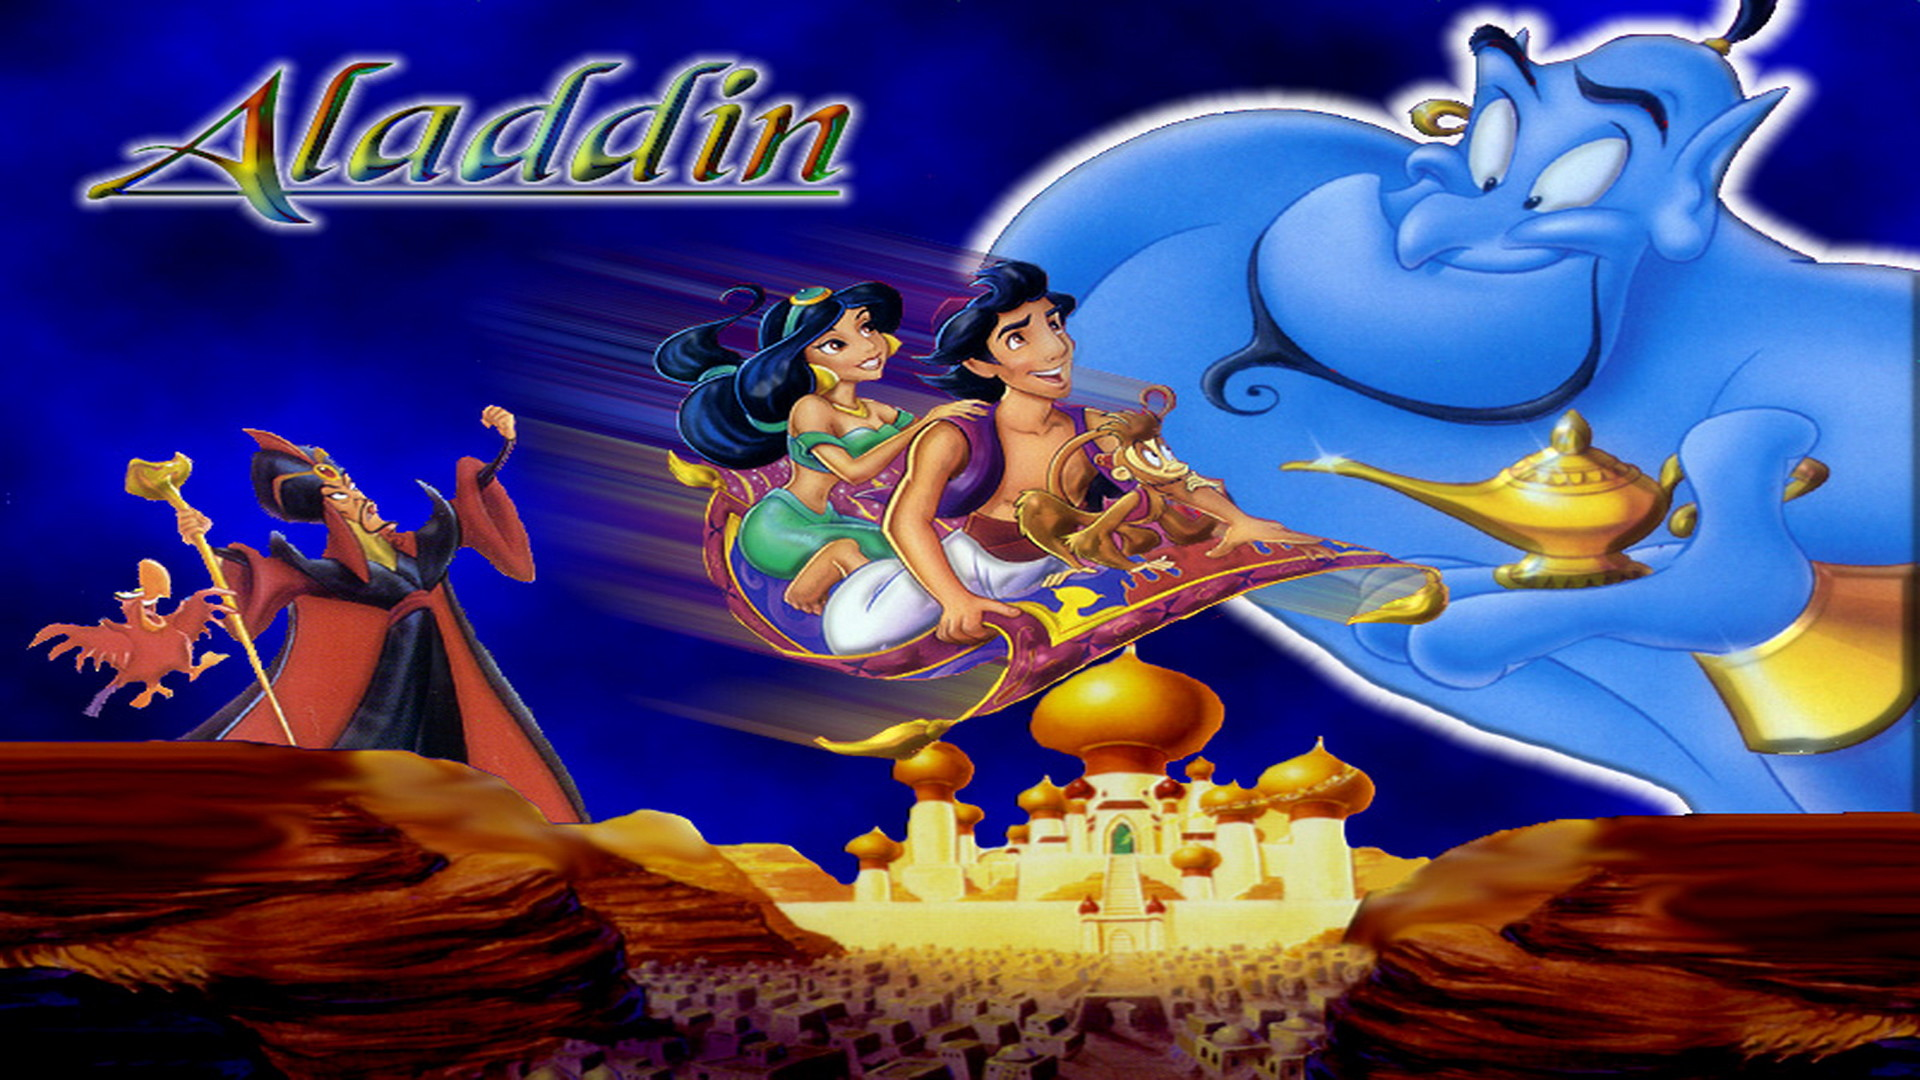 Disney Aladdin Wallpaper Aladdin Wallpapers 67 43 Images